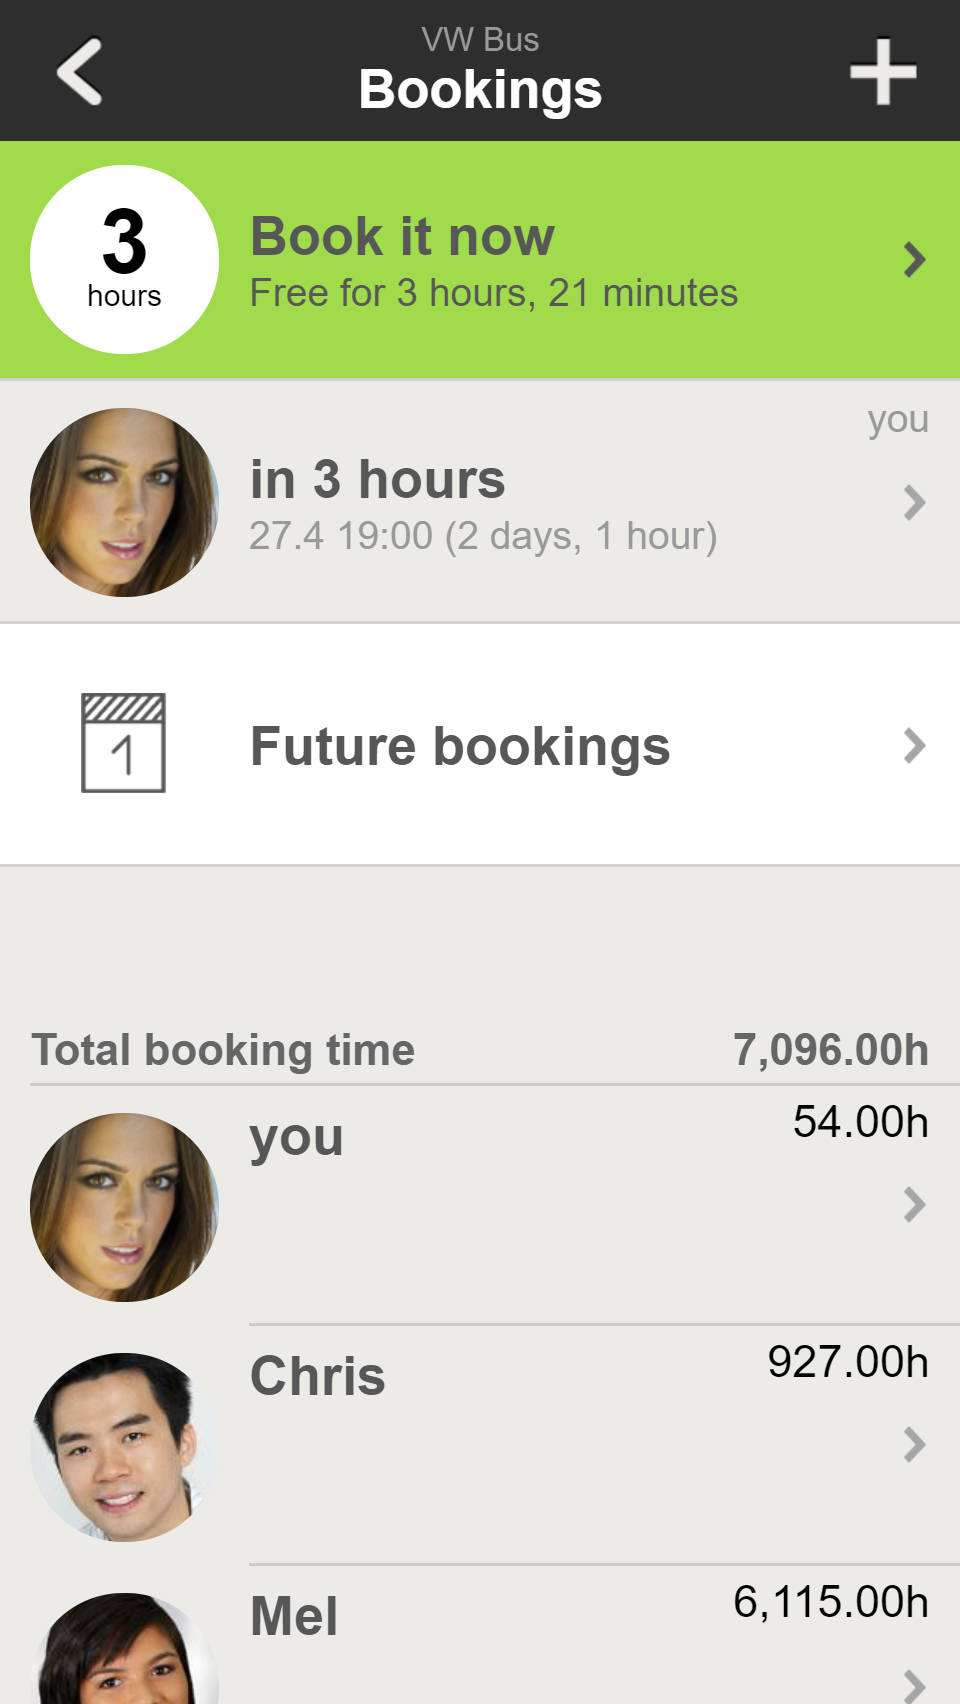 Bookings and Reservations - The booking overview of WeeShare